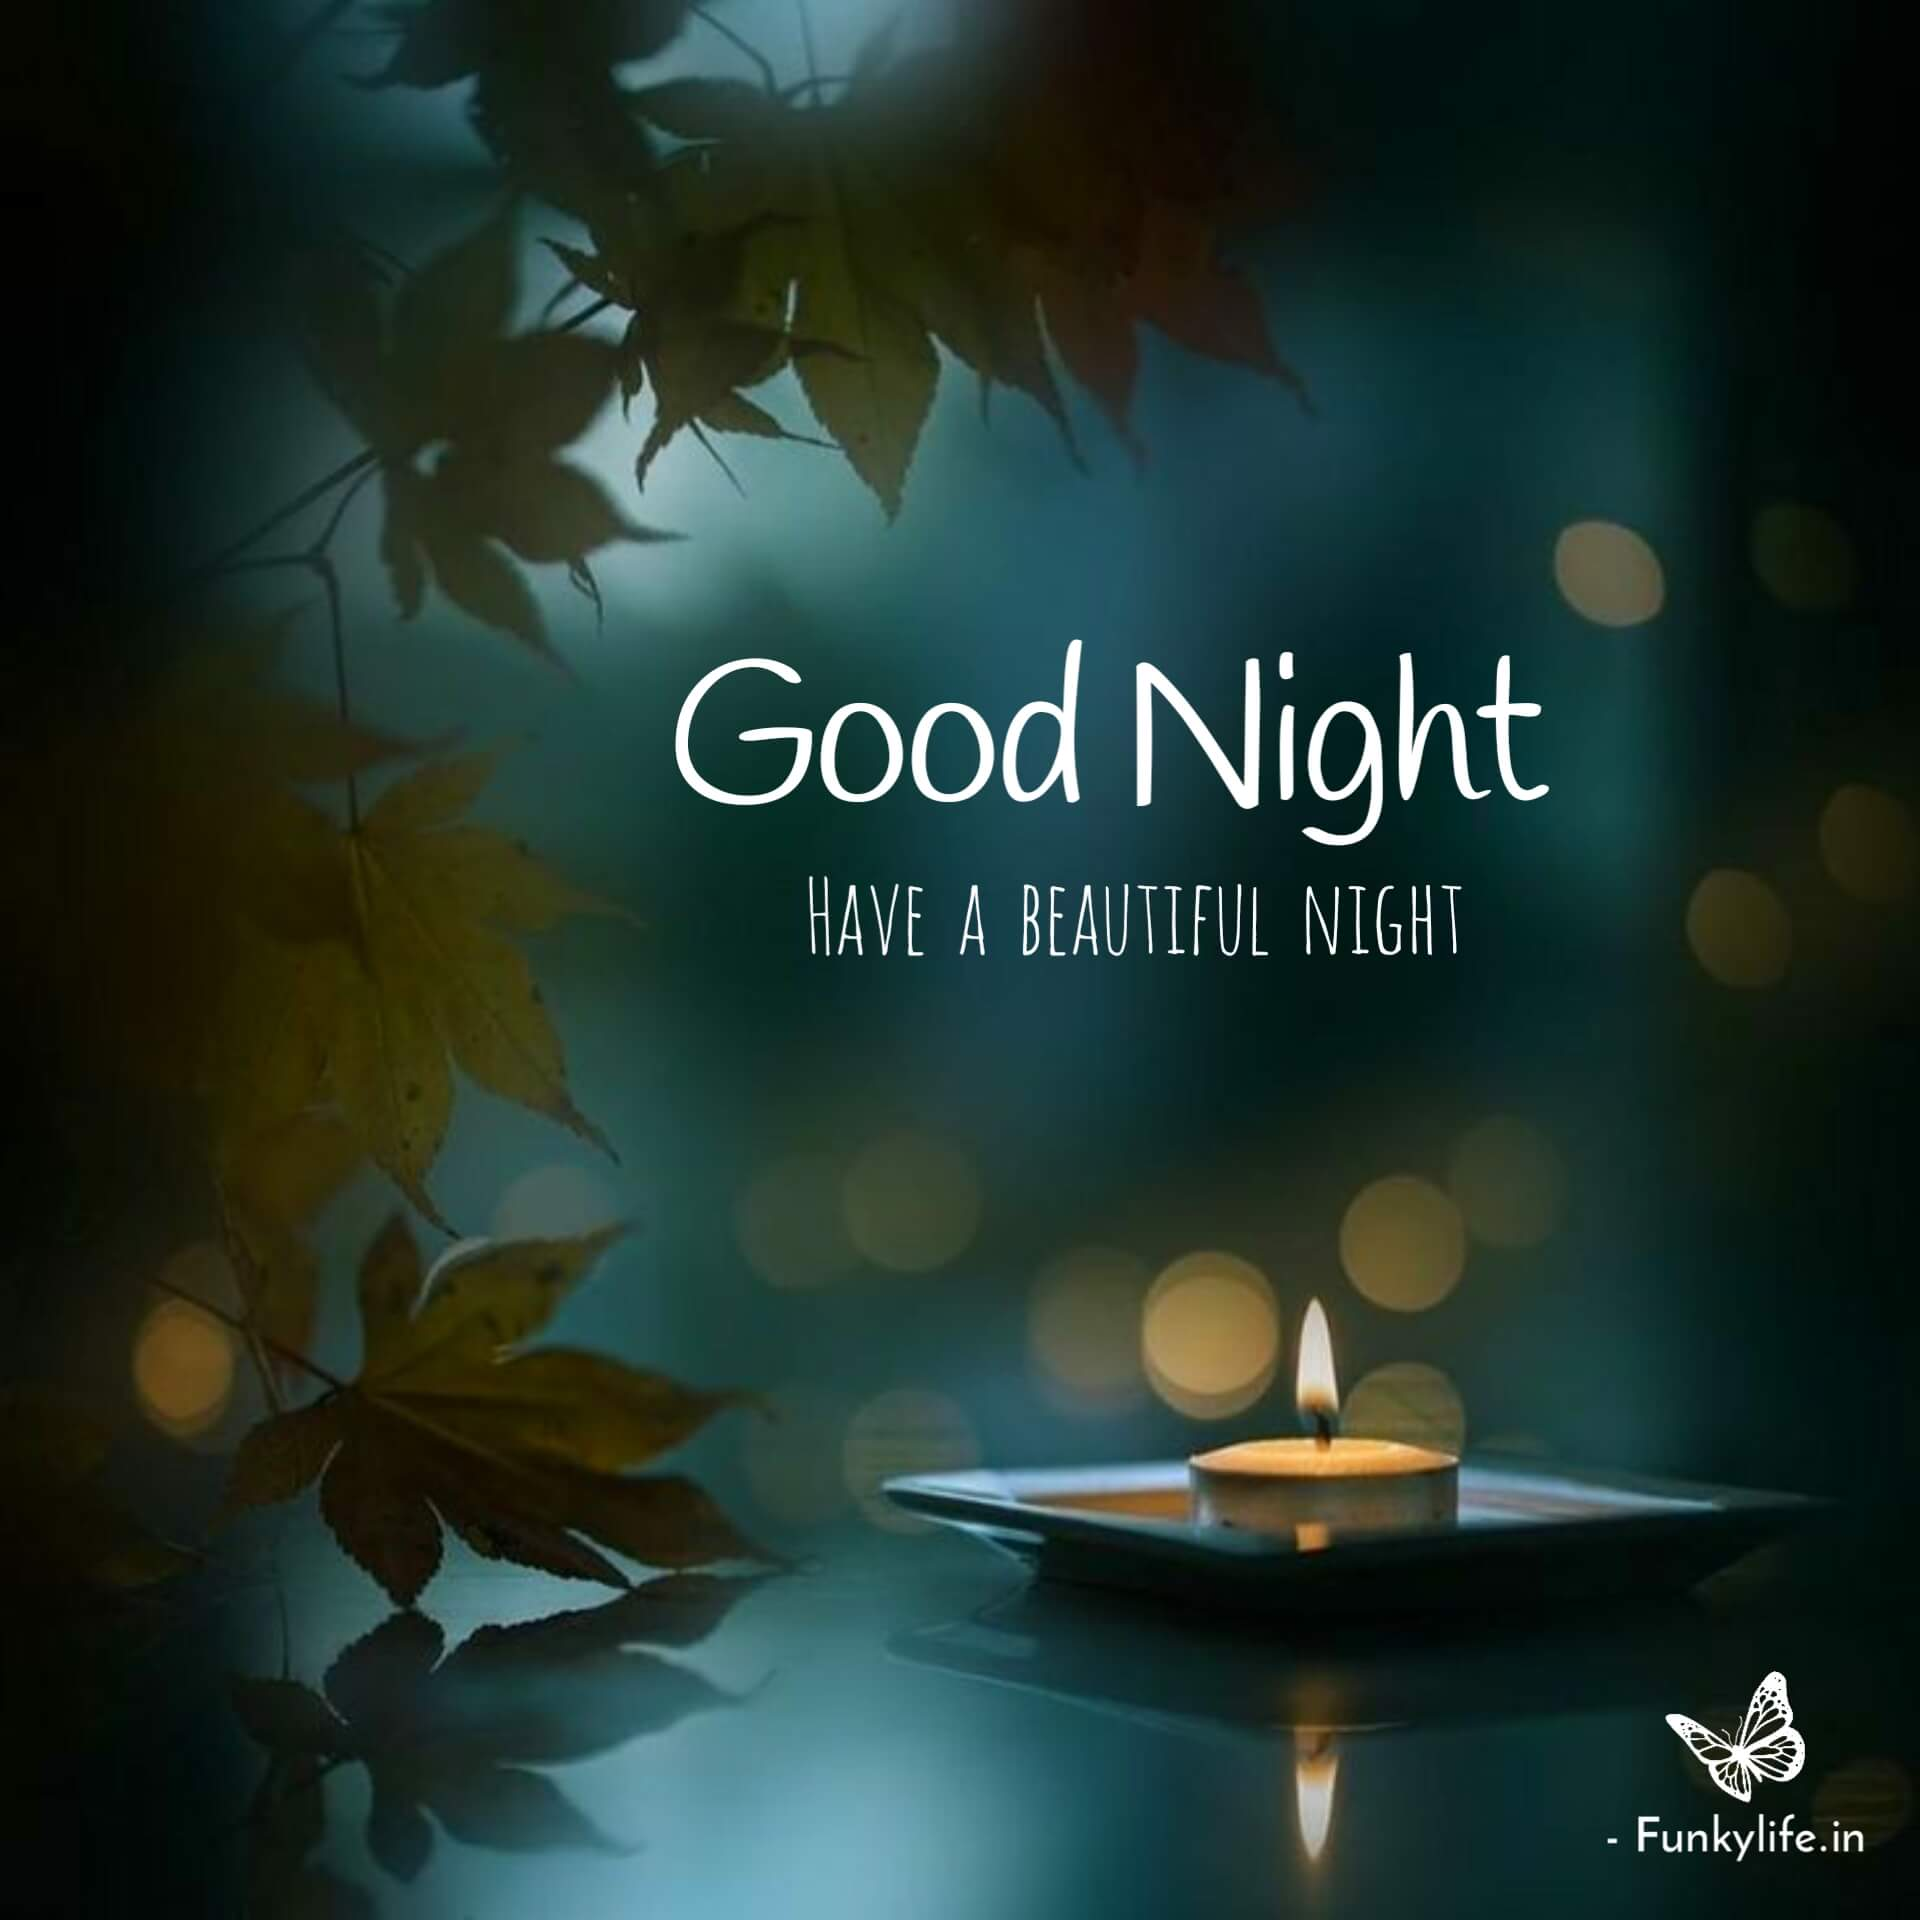 have a beautiful night image